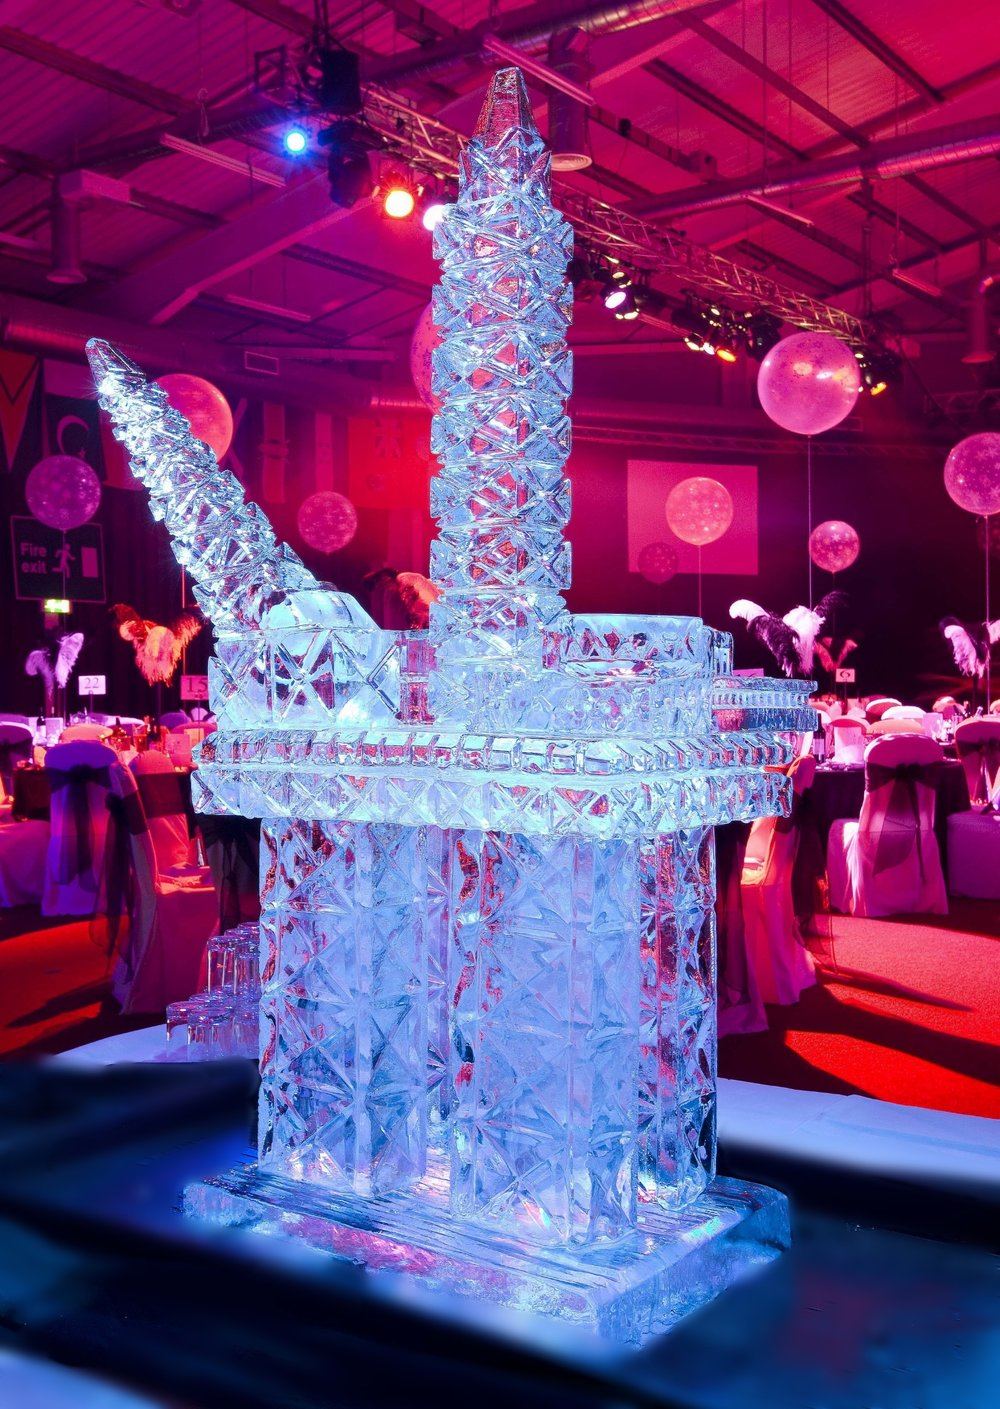 ICE CARVING OIL RIG LUGE - GLASGOW